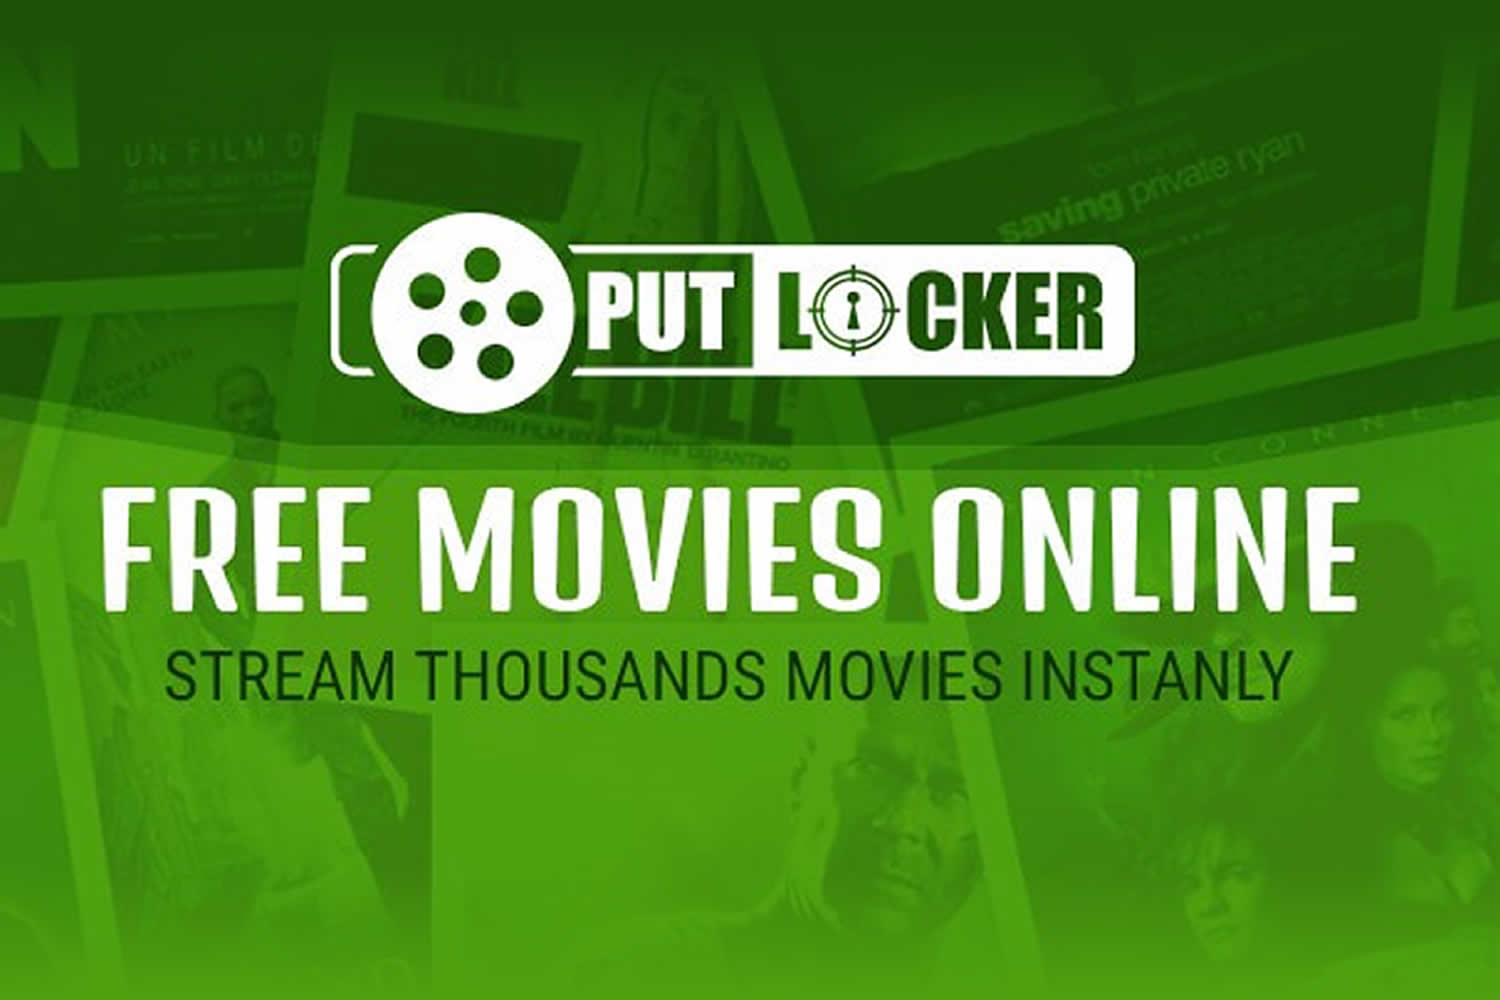 Watch Gang of Bra Putlocker Movies